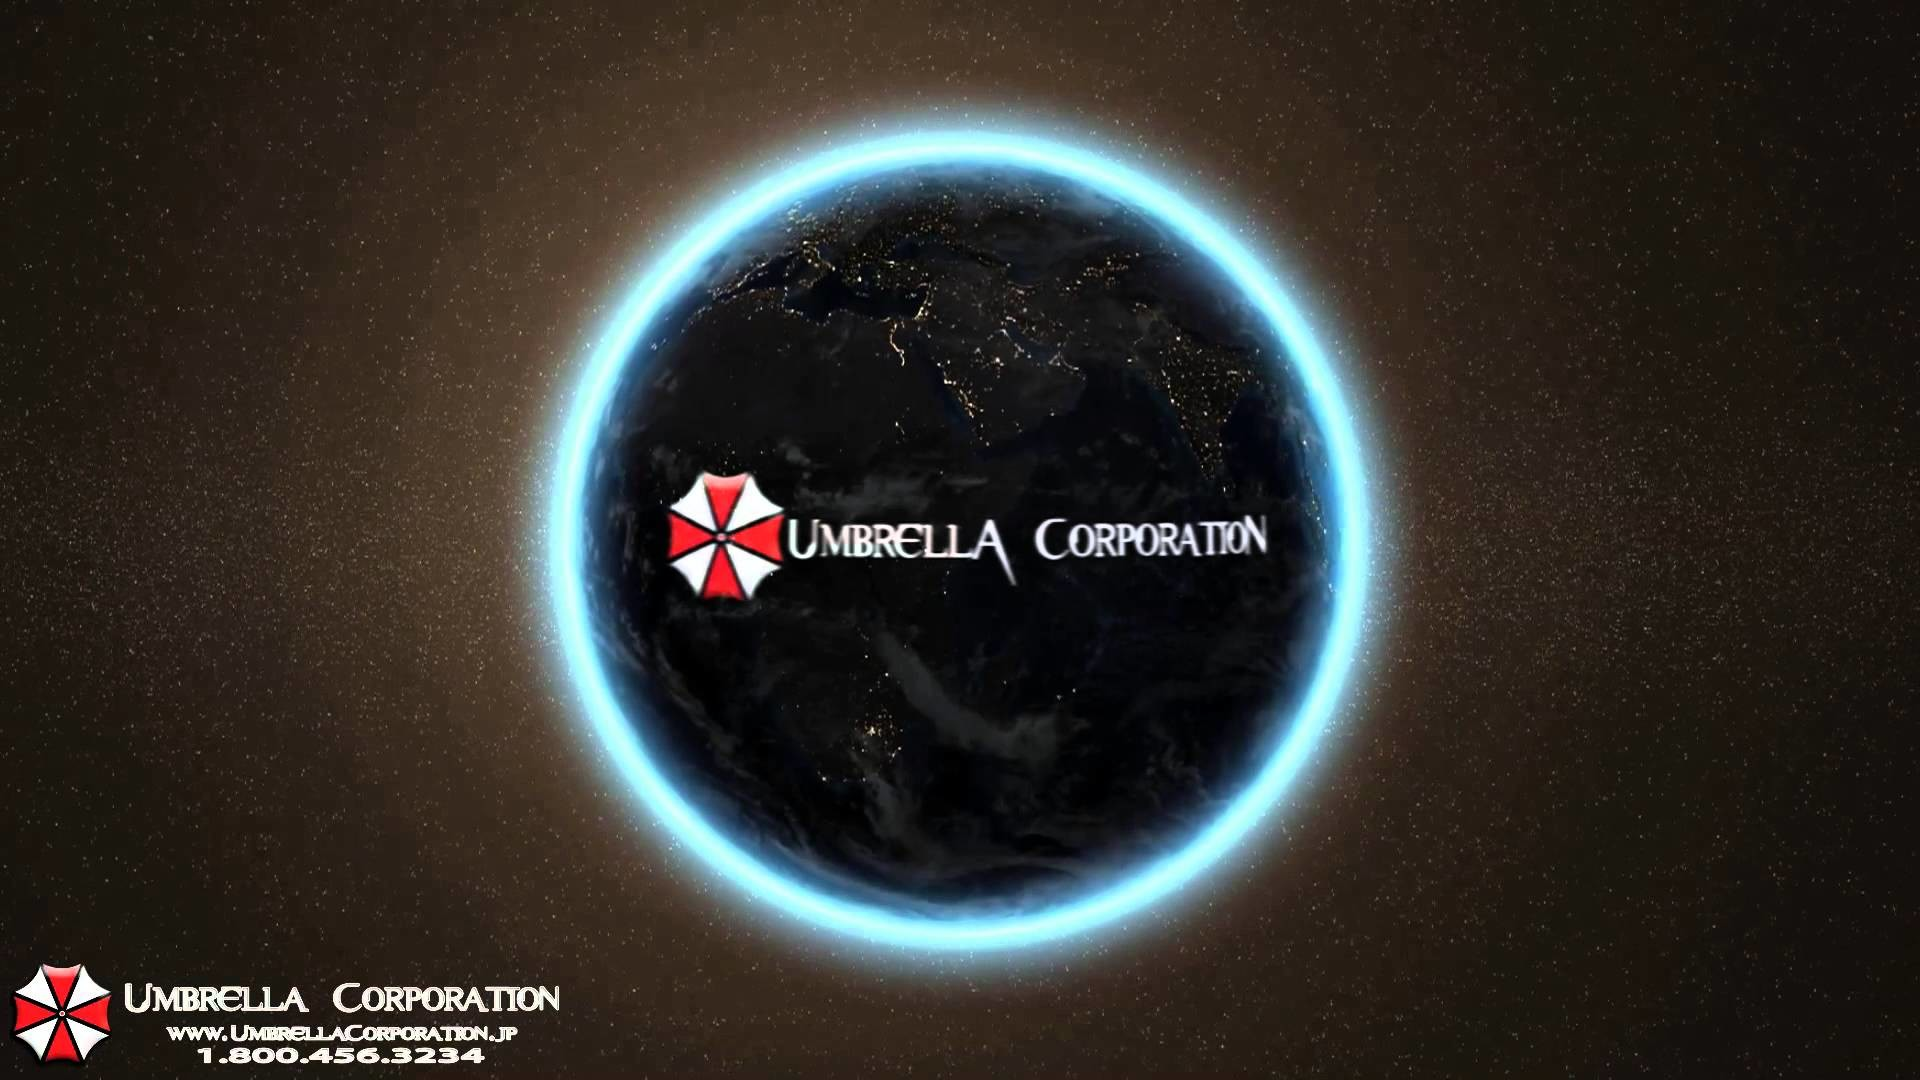 Cartoon Boy And Girl Love Wallpaper Umbrella Corporation Background 67 Images